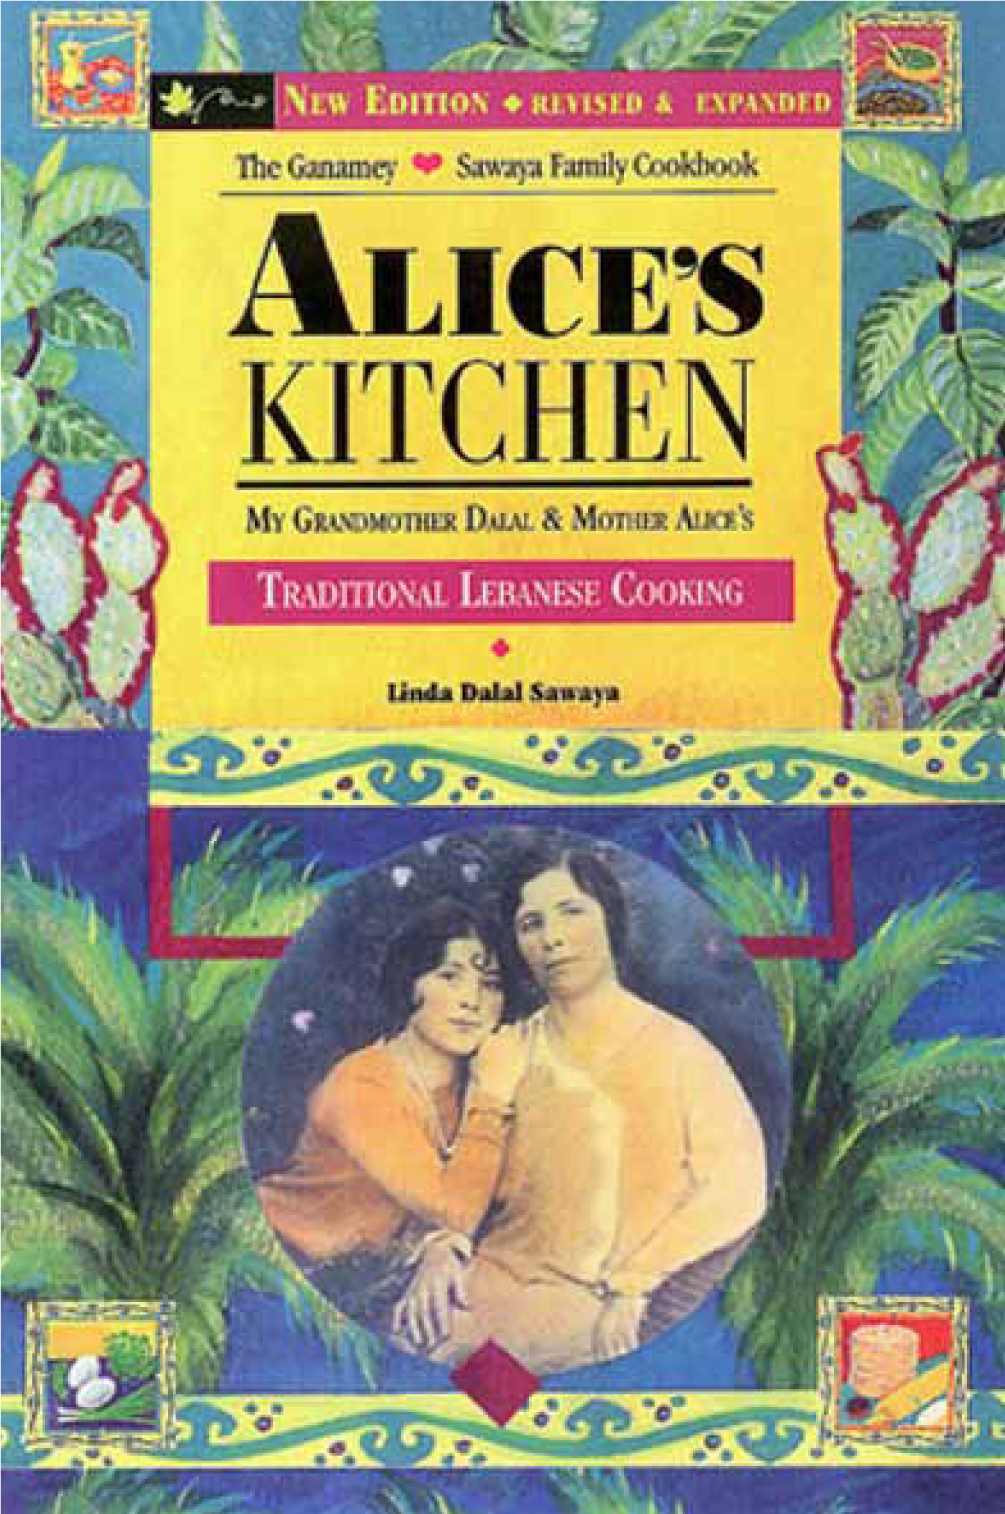 Alices kitchen traditional lebanese cooking alices kitchen is authentic lebanese home cooking at its best an immigrant family cookbook with more than 125 original recipes from how to pick and cure forumfinder Images